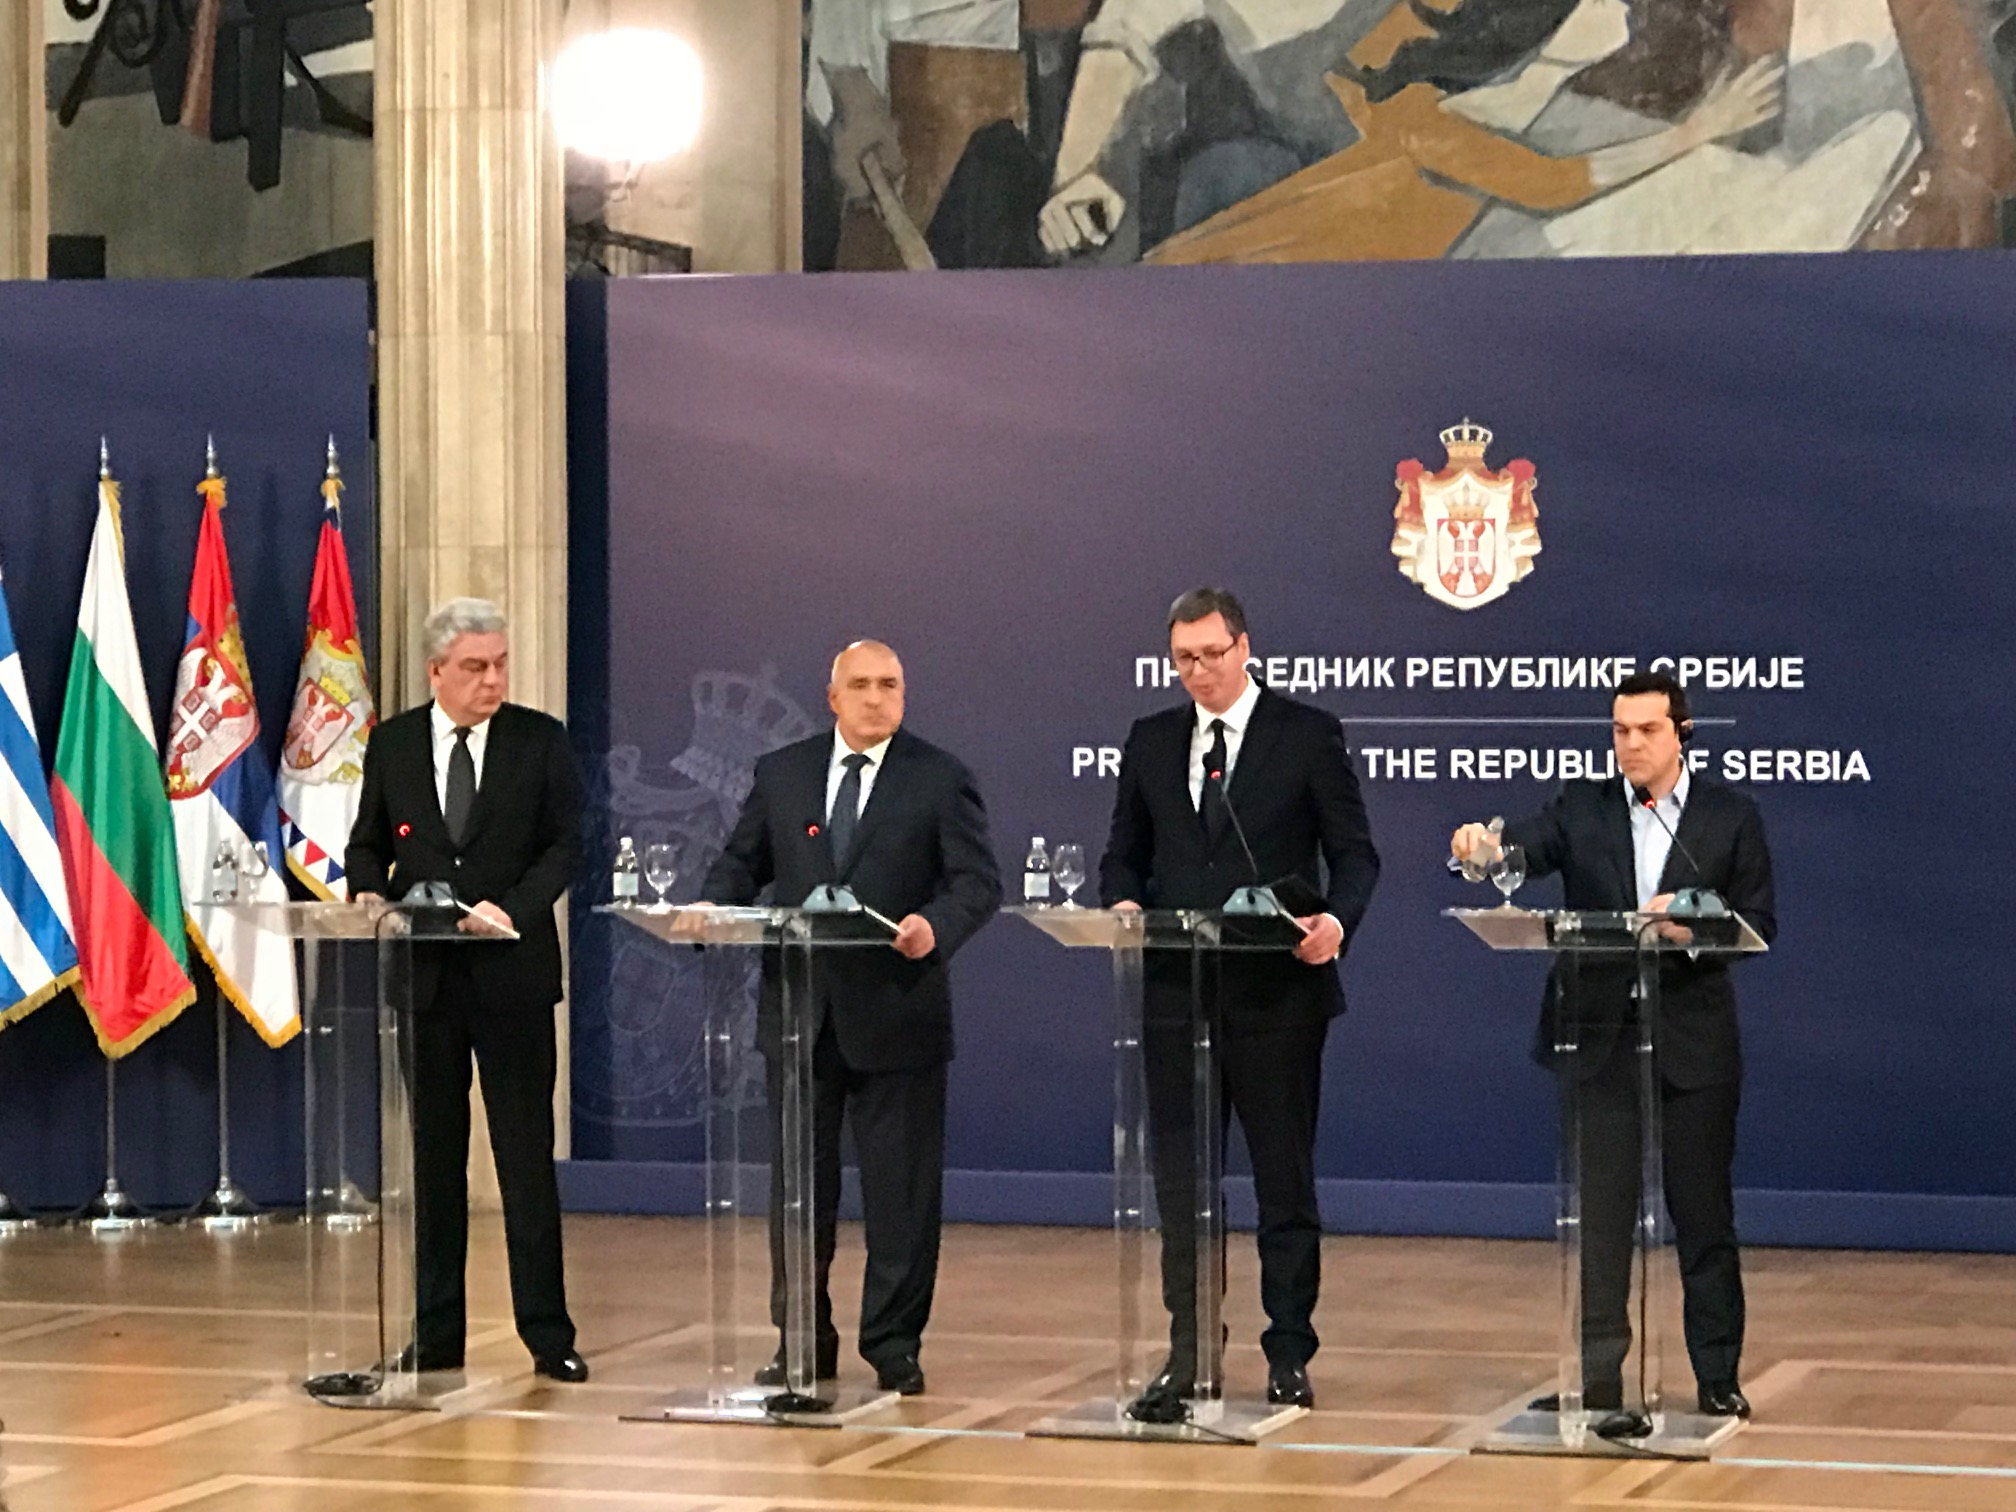 Balkan countries are taking their fate in their own hands